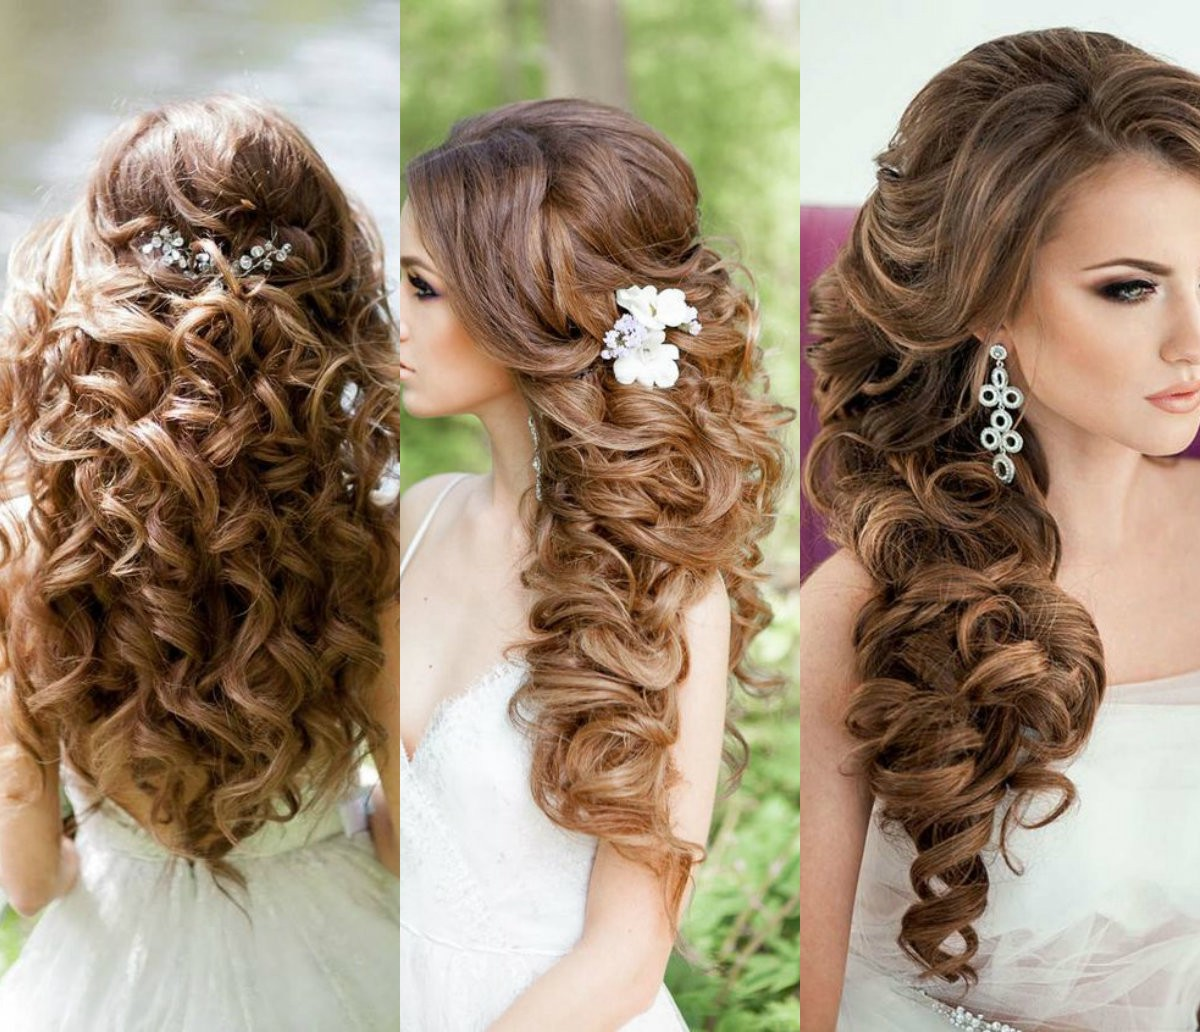 Simply Gorgeous Last Minute Party Hairdos For Curly Hair